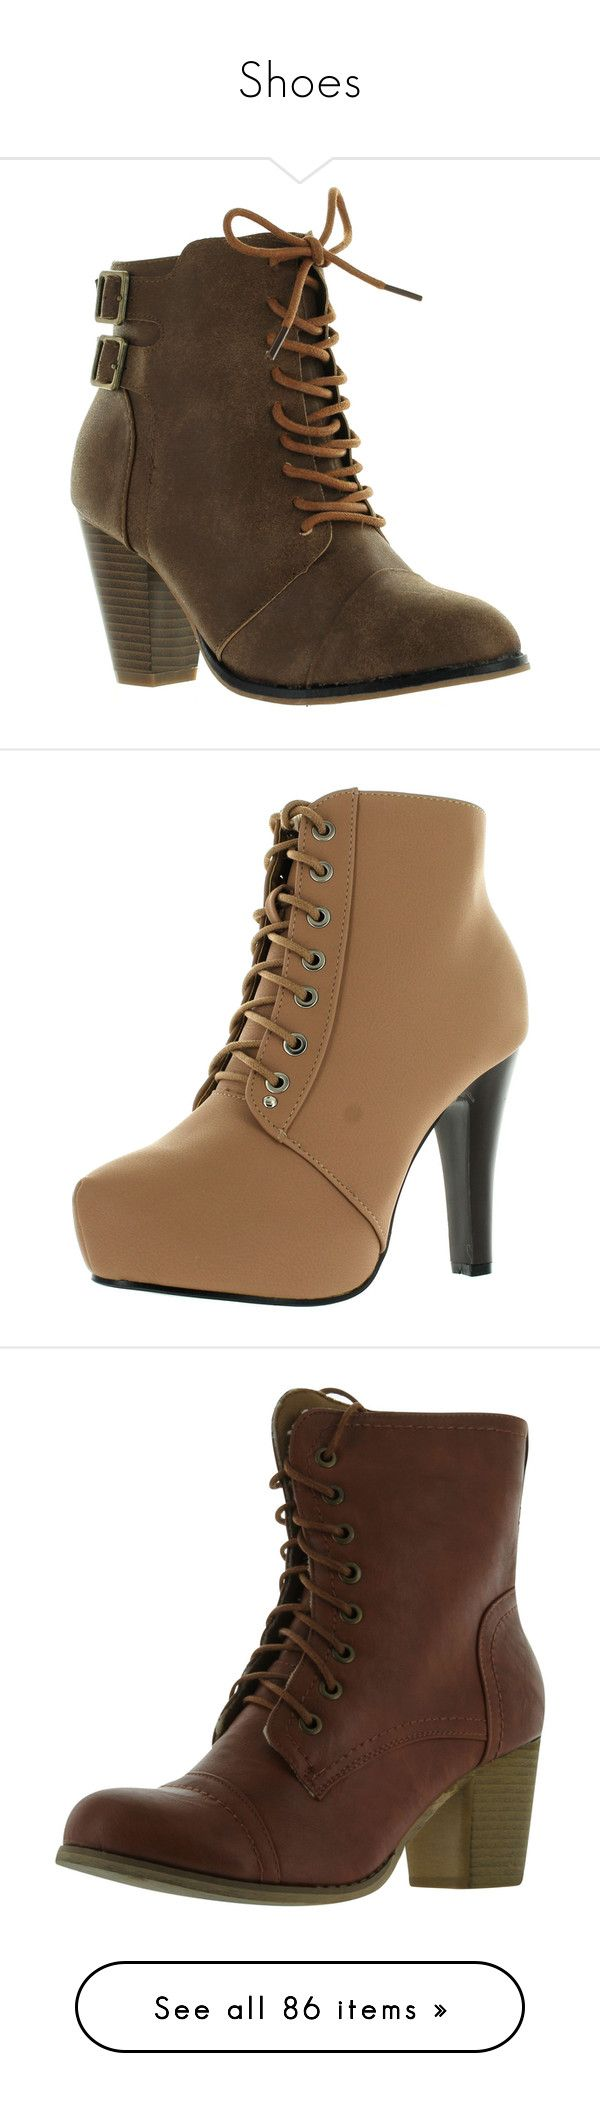 """""""Shoes"""" by aranelr on Polyvore featuring shoes, boots, ankle booties, chunky heel booties, lace-up wedge booties, lace up boots, lace up wedge ankle booties, tan boots, wide ankle boots and wedge ankle booties"""